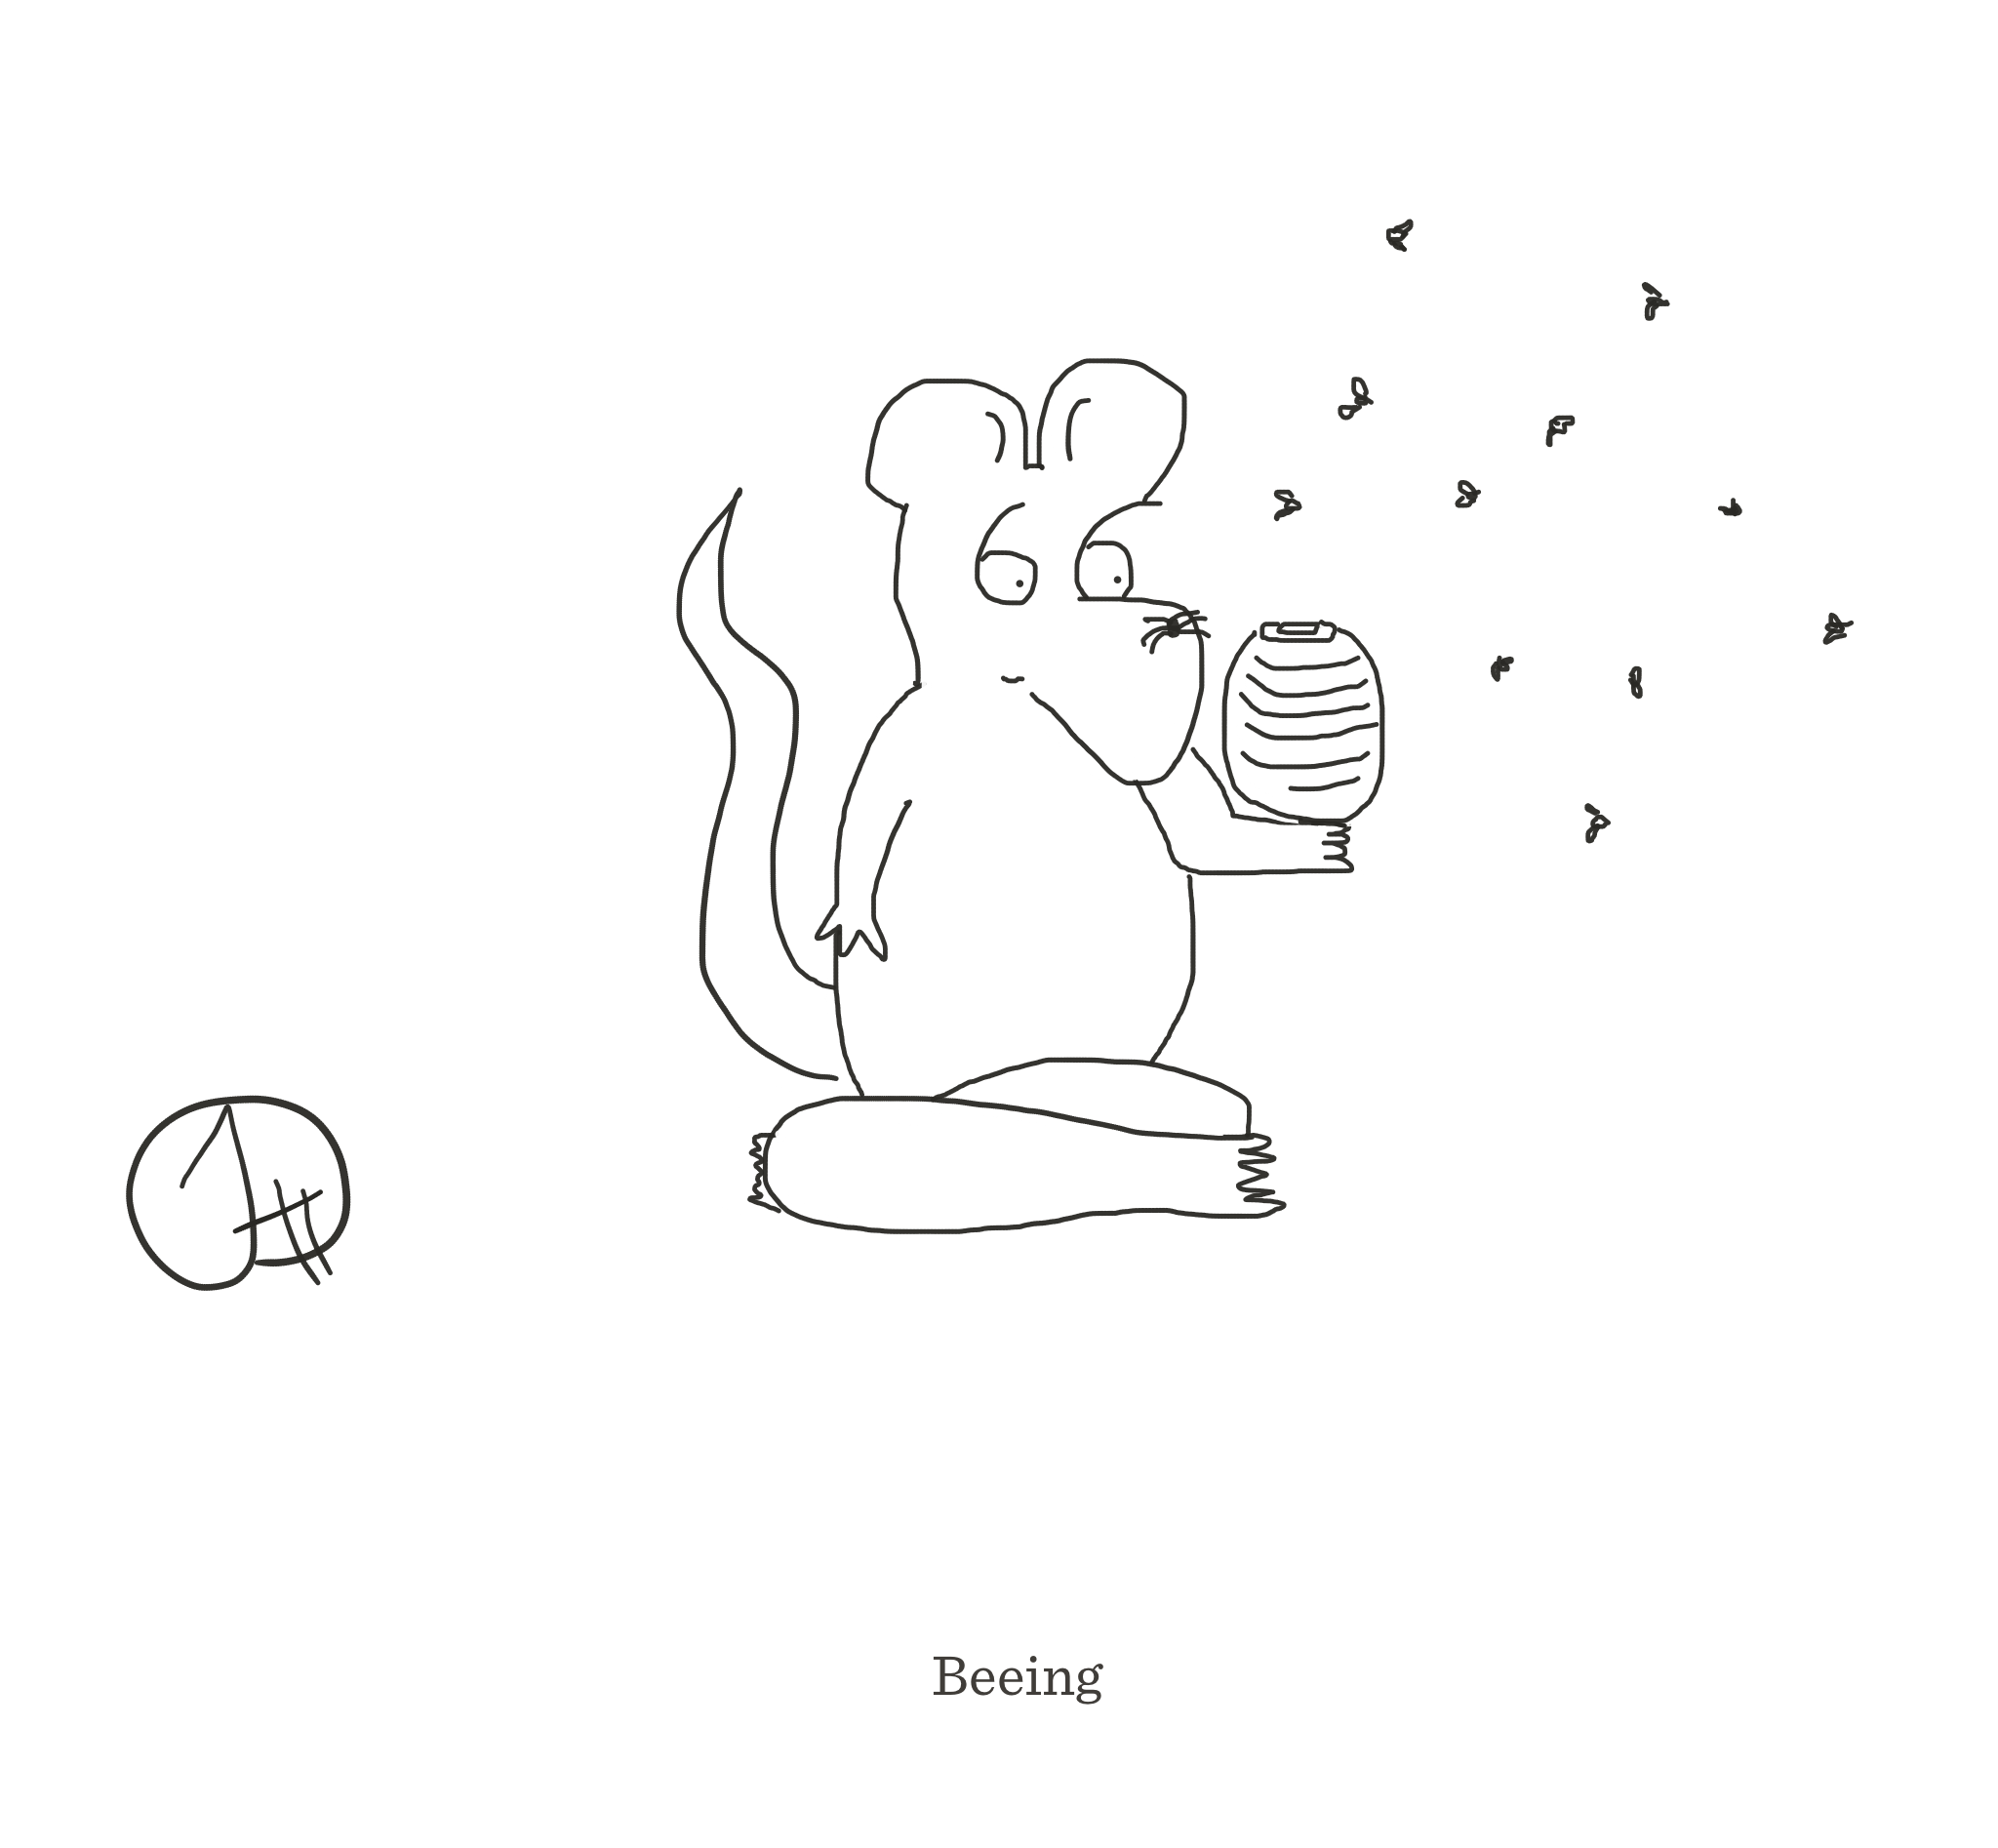 Beeing, The Happy Rat cartoon